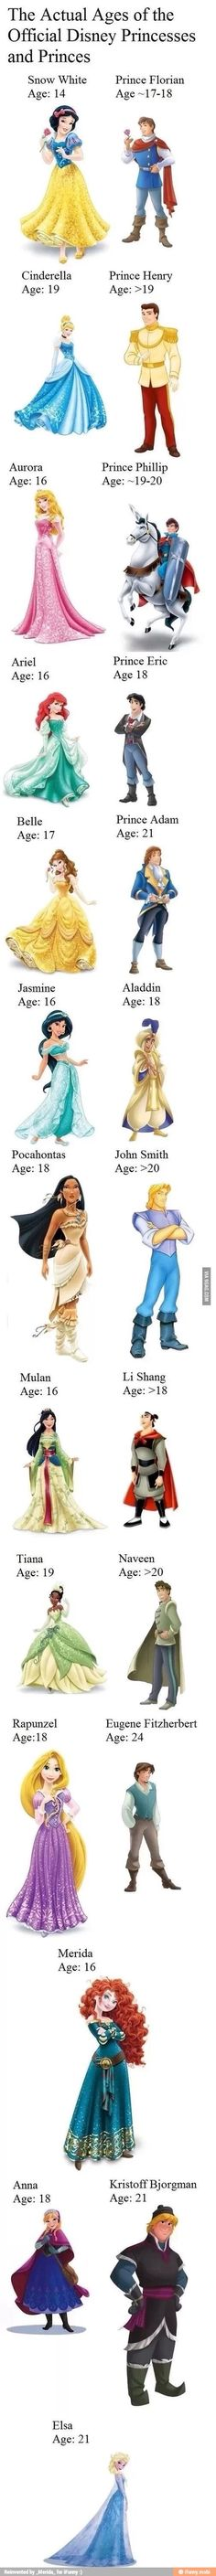 Cool facts about Disney characters.                                                                                                                                                      More